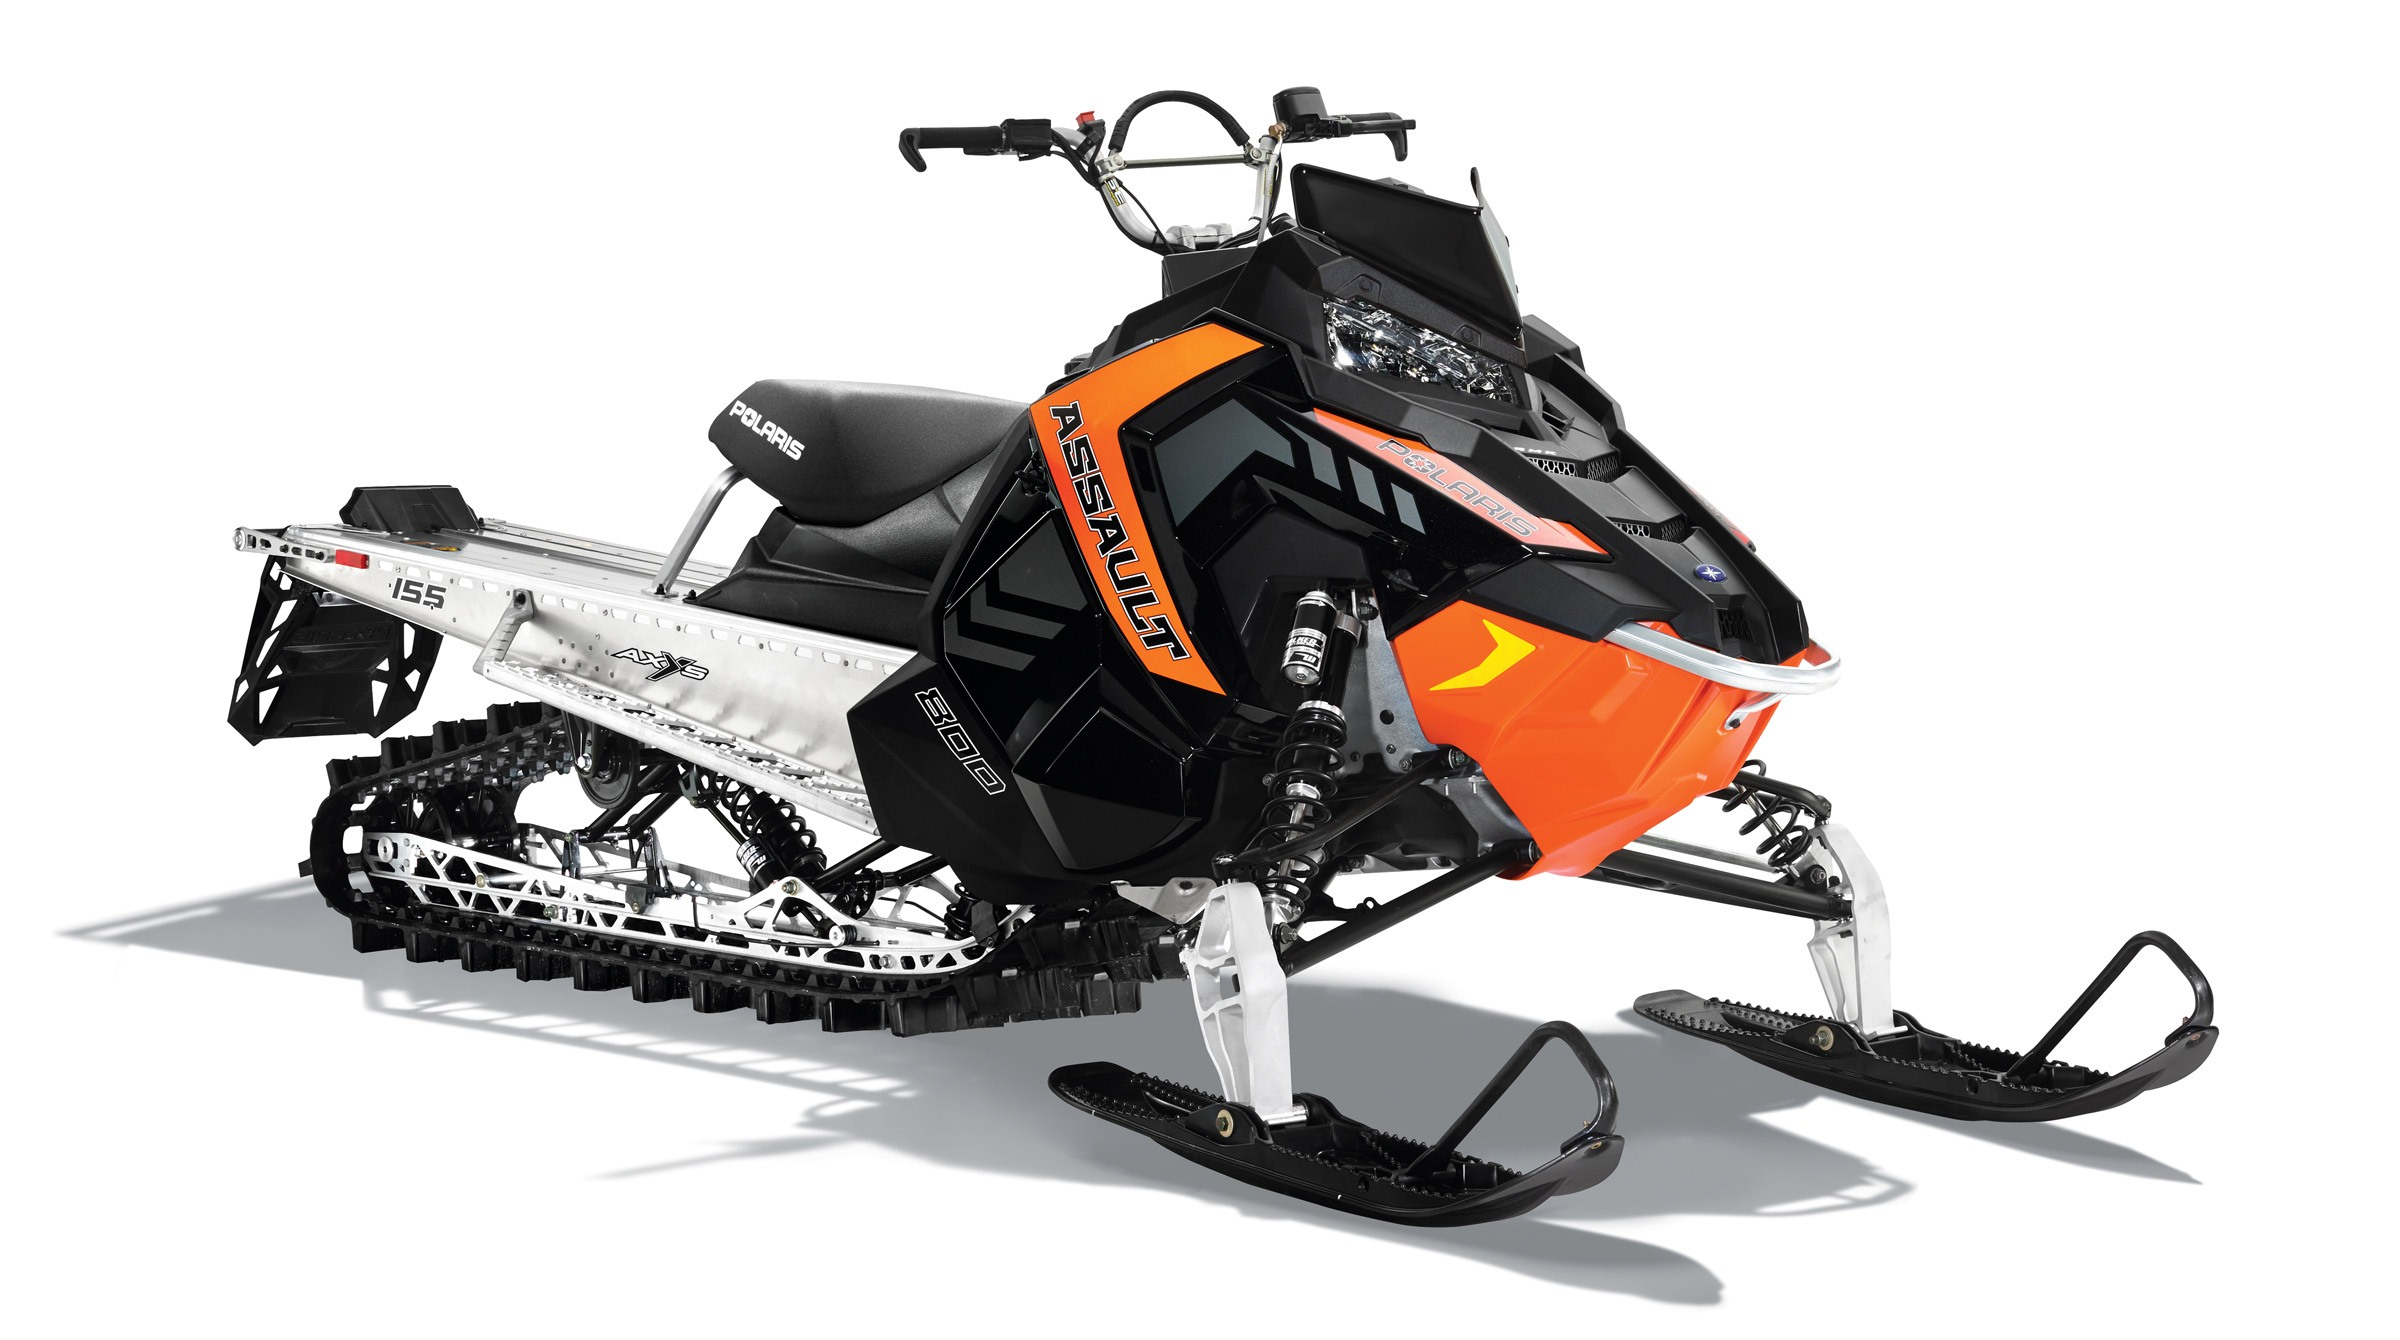 2016 Polaris 800 RMK Assault 155 Powder in Auburn, California